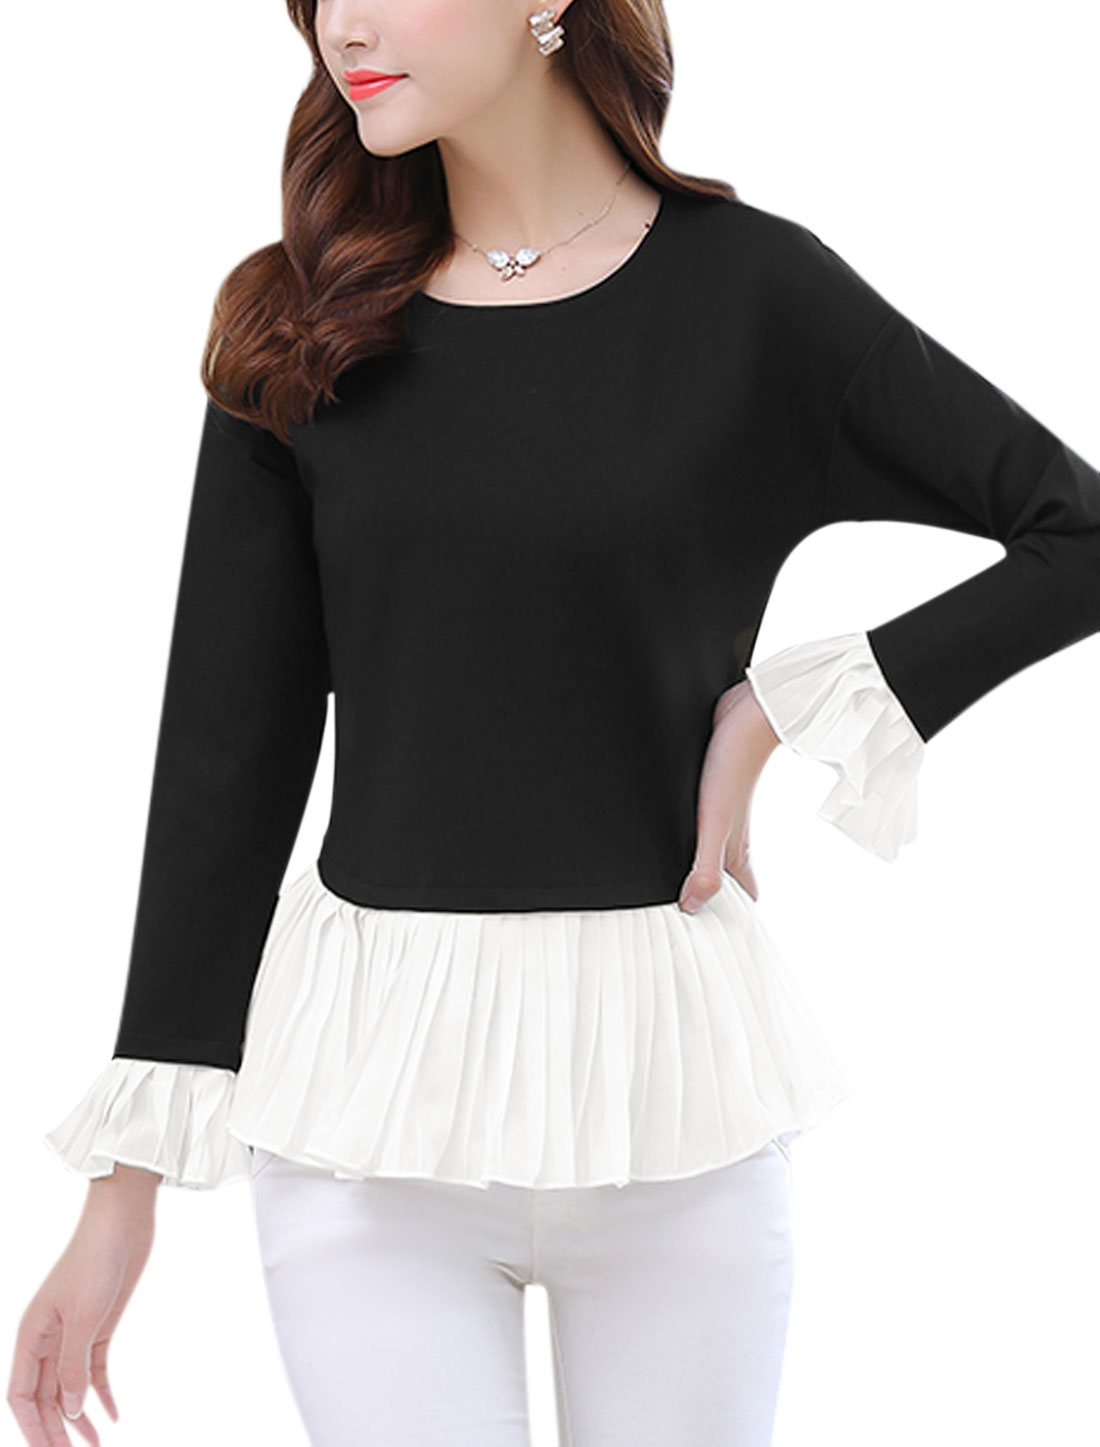 Lady Long Sleeves Chiffon Panel Flouncing Hem Peplum Top Black M